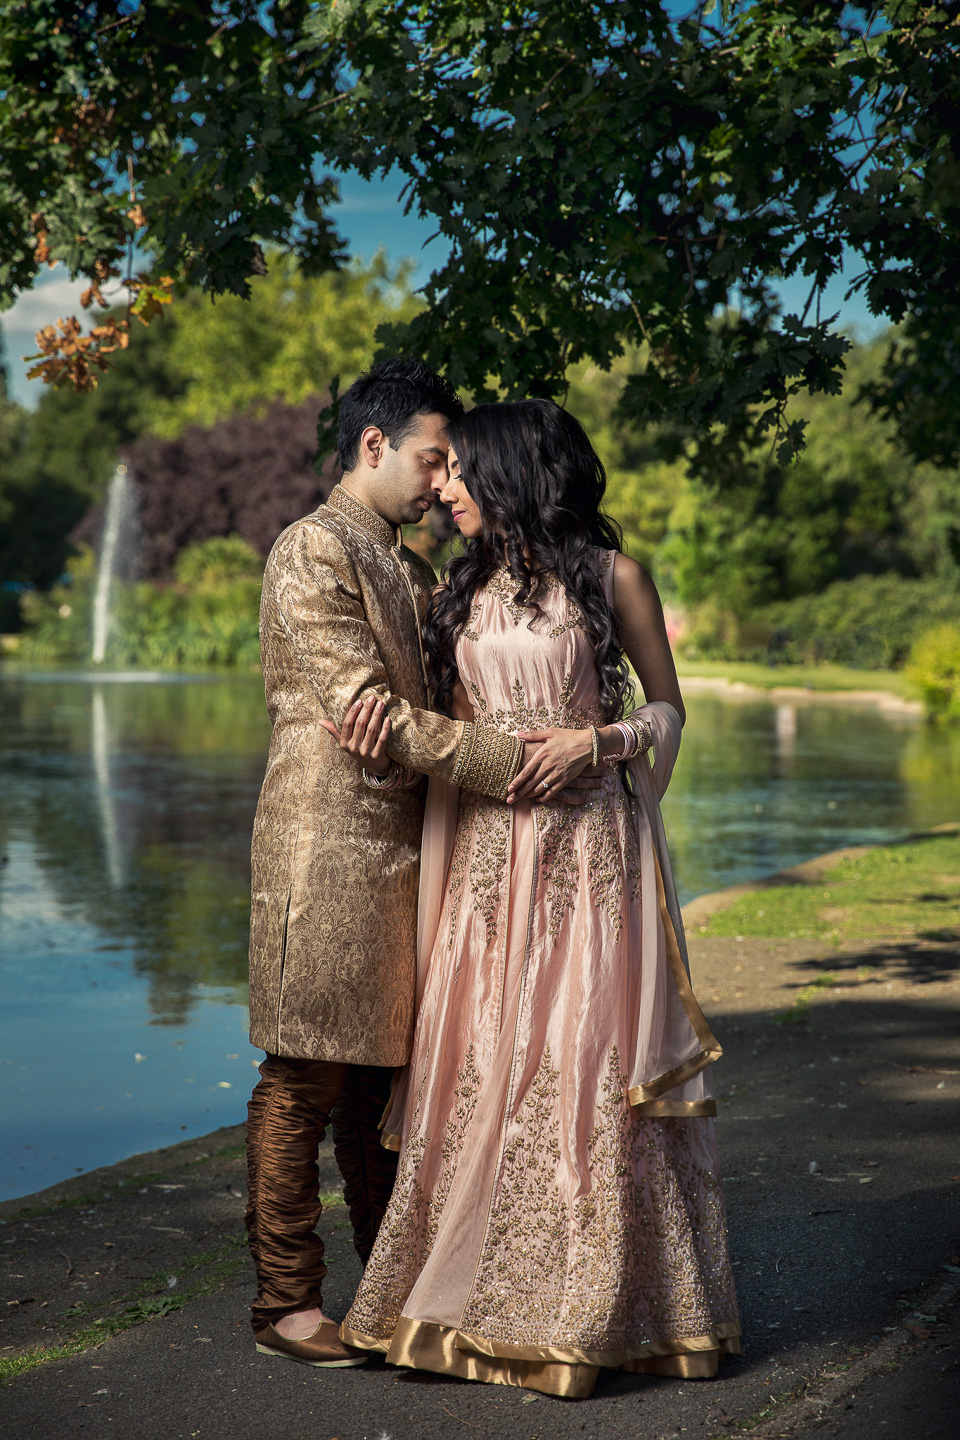 London Wedding Photographer Engagement Photoshoot London Indian Wedding -1.jpg